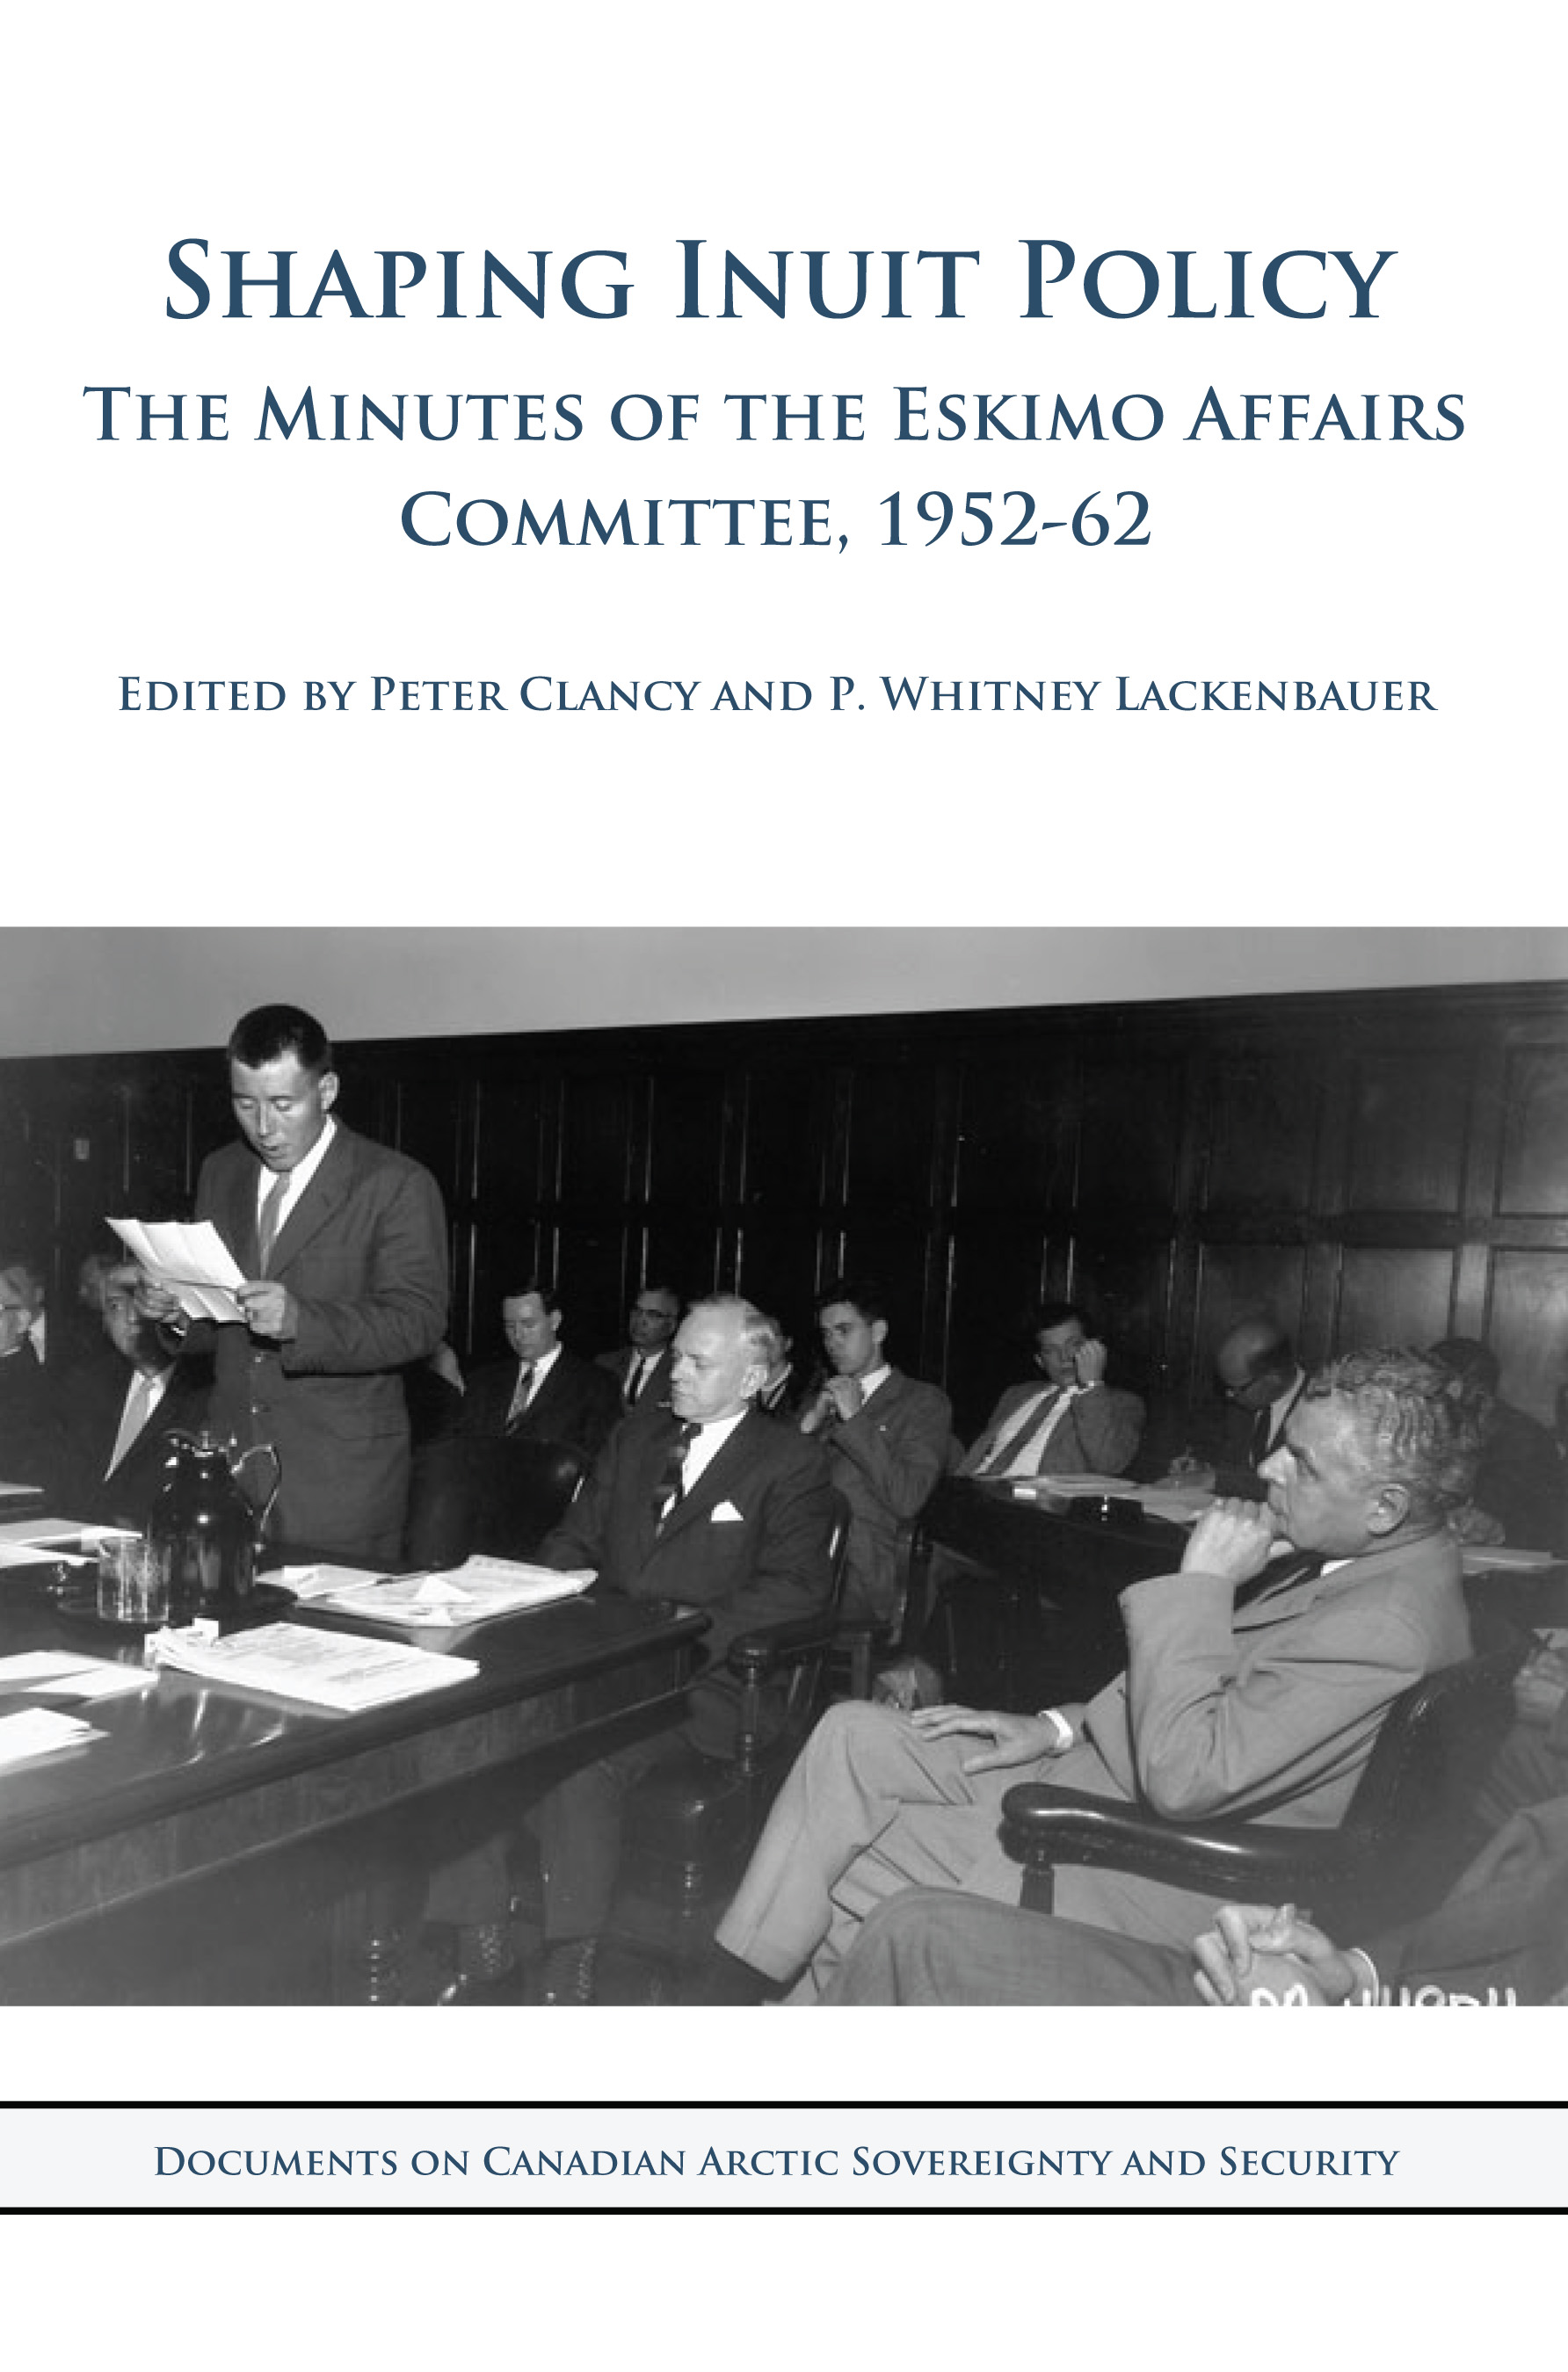 Shaping Arctic Policy: The Minutes of the Eskimo Affairs Committee, 1952-62.